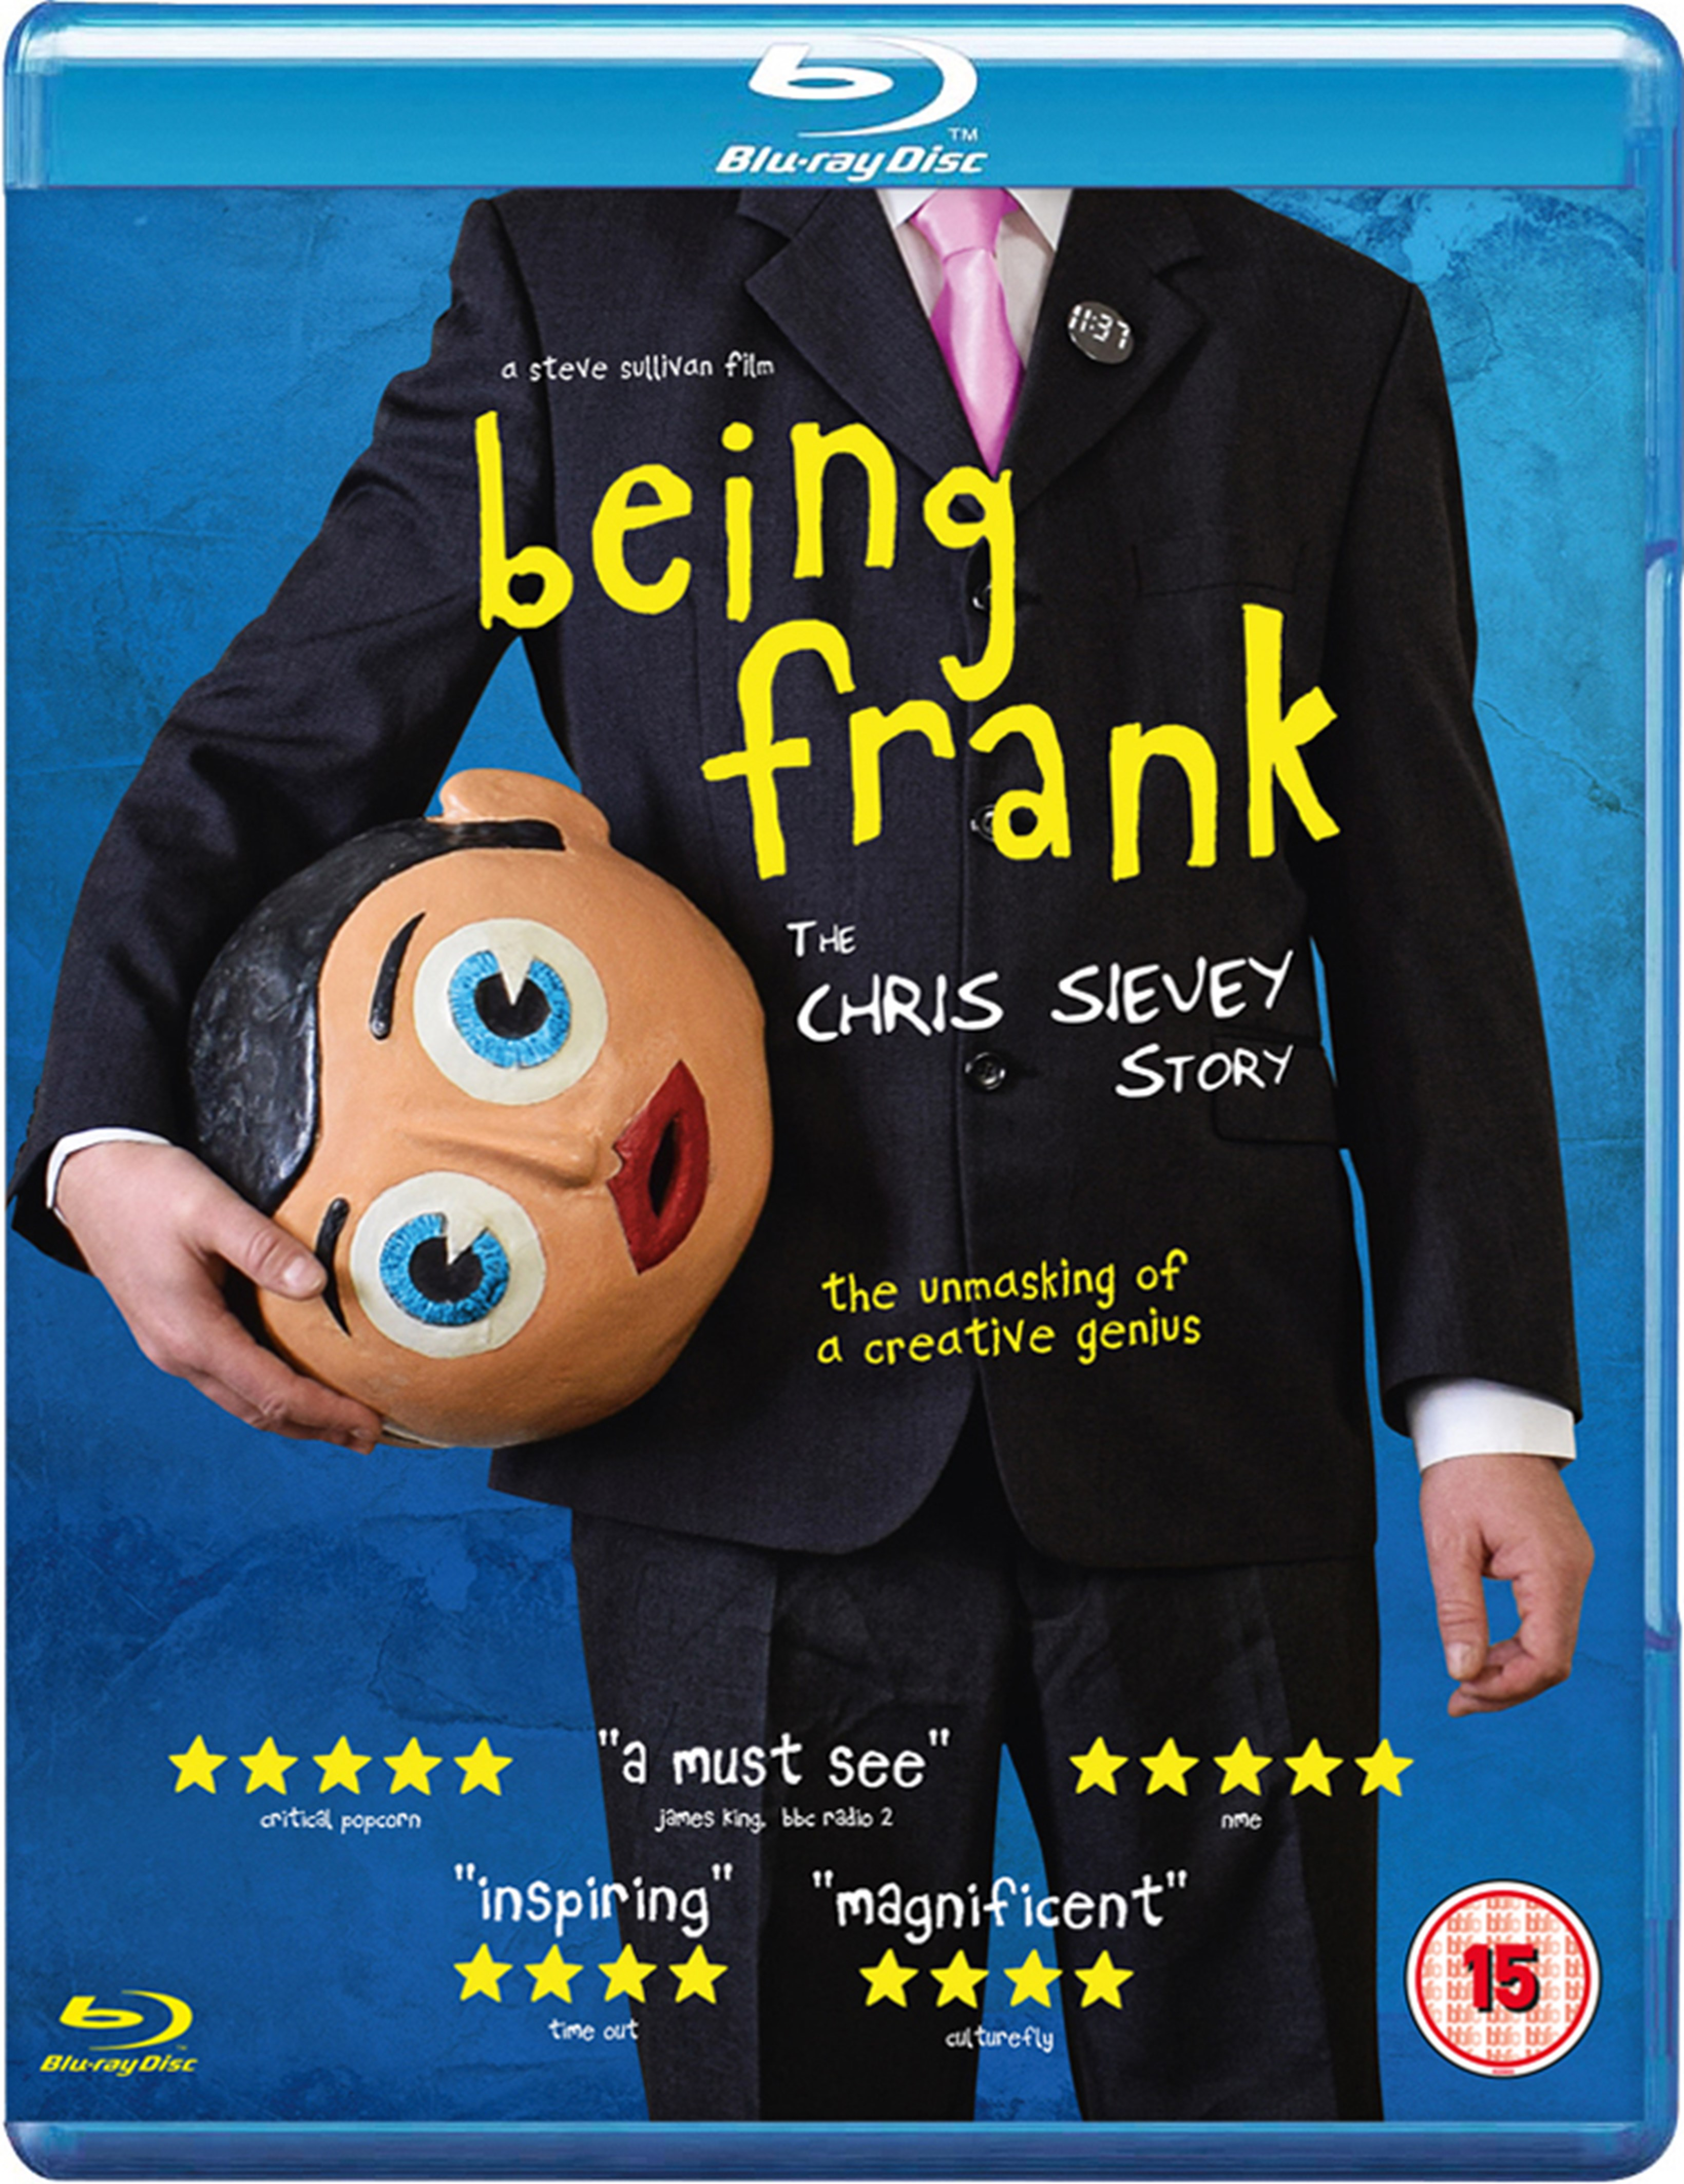 Being Frank - The Chris Sievey Story - 1